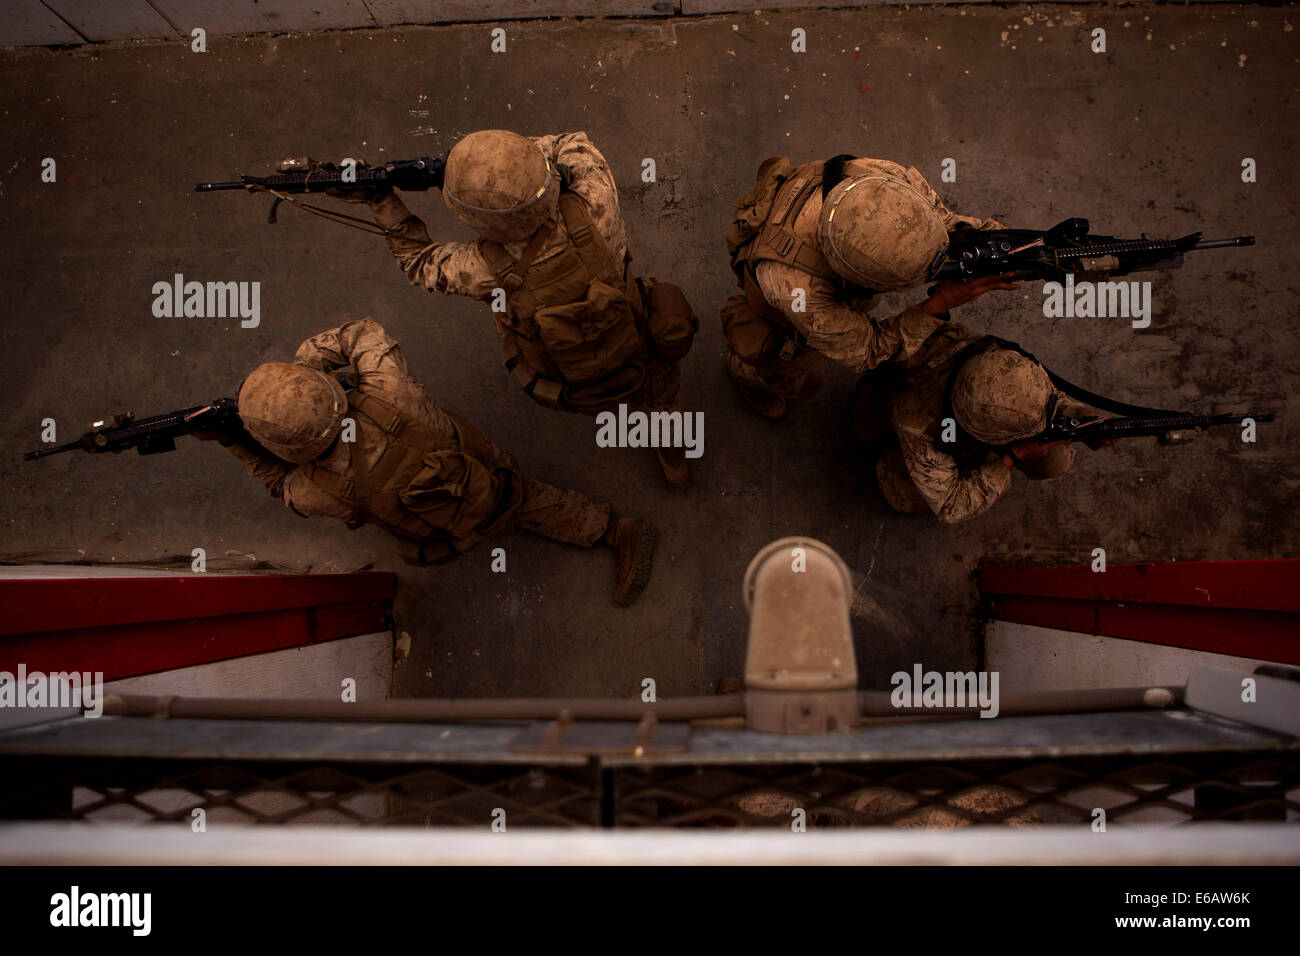 U.S. Marines with India Company, 3rd Battalion, 3rd Marine Regiment practice clearing rooms during training at the Pohakuloa Training Area in Hawaii July 22, 2014, as part of Rim of the Pacific (RIMPAC) 2014. RIMPAC is a U.S. Pacific Fleet-hosted biennial Stock Photo